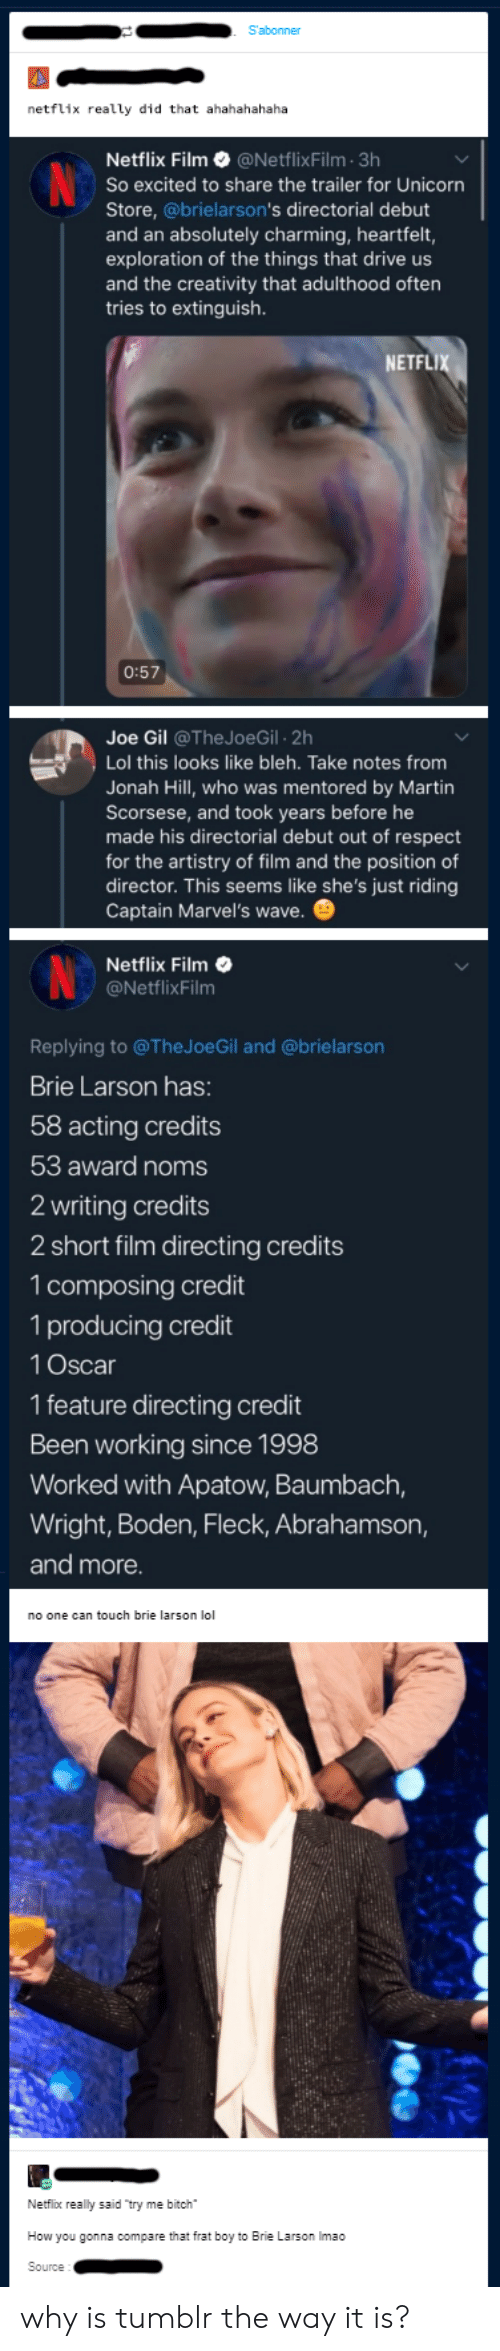 Bitch, Frat Boy, and Jonah Hill: S'abonner  netflix really did that ahahahahaha  Netflix Film@NetflixFilm 3h  So excited to share the trailer for Unicorn  Store, @brielarson's directorial debut  and an absolutely charming, heartfelt,  exploration of the things that drive us  and the creativity that adulthood often  tries to extinguish.  NETFL  0:57  Joe Gil @The JoeGil 2h  Lol this looks like bleh. Take notes from  Jonah Hill, who was mentored by Martin  Scorsese, and took years before he  made his directorial debut out of respect  for the artistry of film and the position of  director. This seems like she's just riding  Captain Marvel's wave.  Netflix Film  @NetflixFilnm  Replying to @TheJoeGil and @brielarson  Brie Larson has:  58 acting credits  53 award noms  2 writing credits  2 short film directing credits  1 composing credit  1 producing credit  1 Oscar  1 feature directing credit  Been working since 1998  Worked with Apatow, Baumbach,  Wright, Boden, Fleck, Abrahamson,  and more  no one can touch brie larson lol  Netfix really said try me bitch  How you gonna compare that frat boy to Brie Larson Imao why is tumblr the way it is?